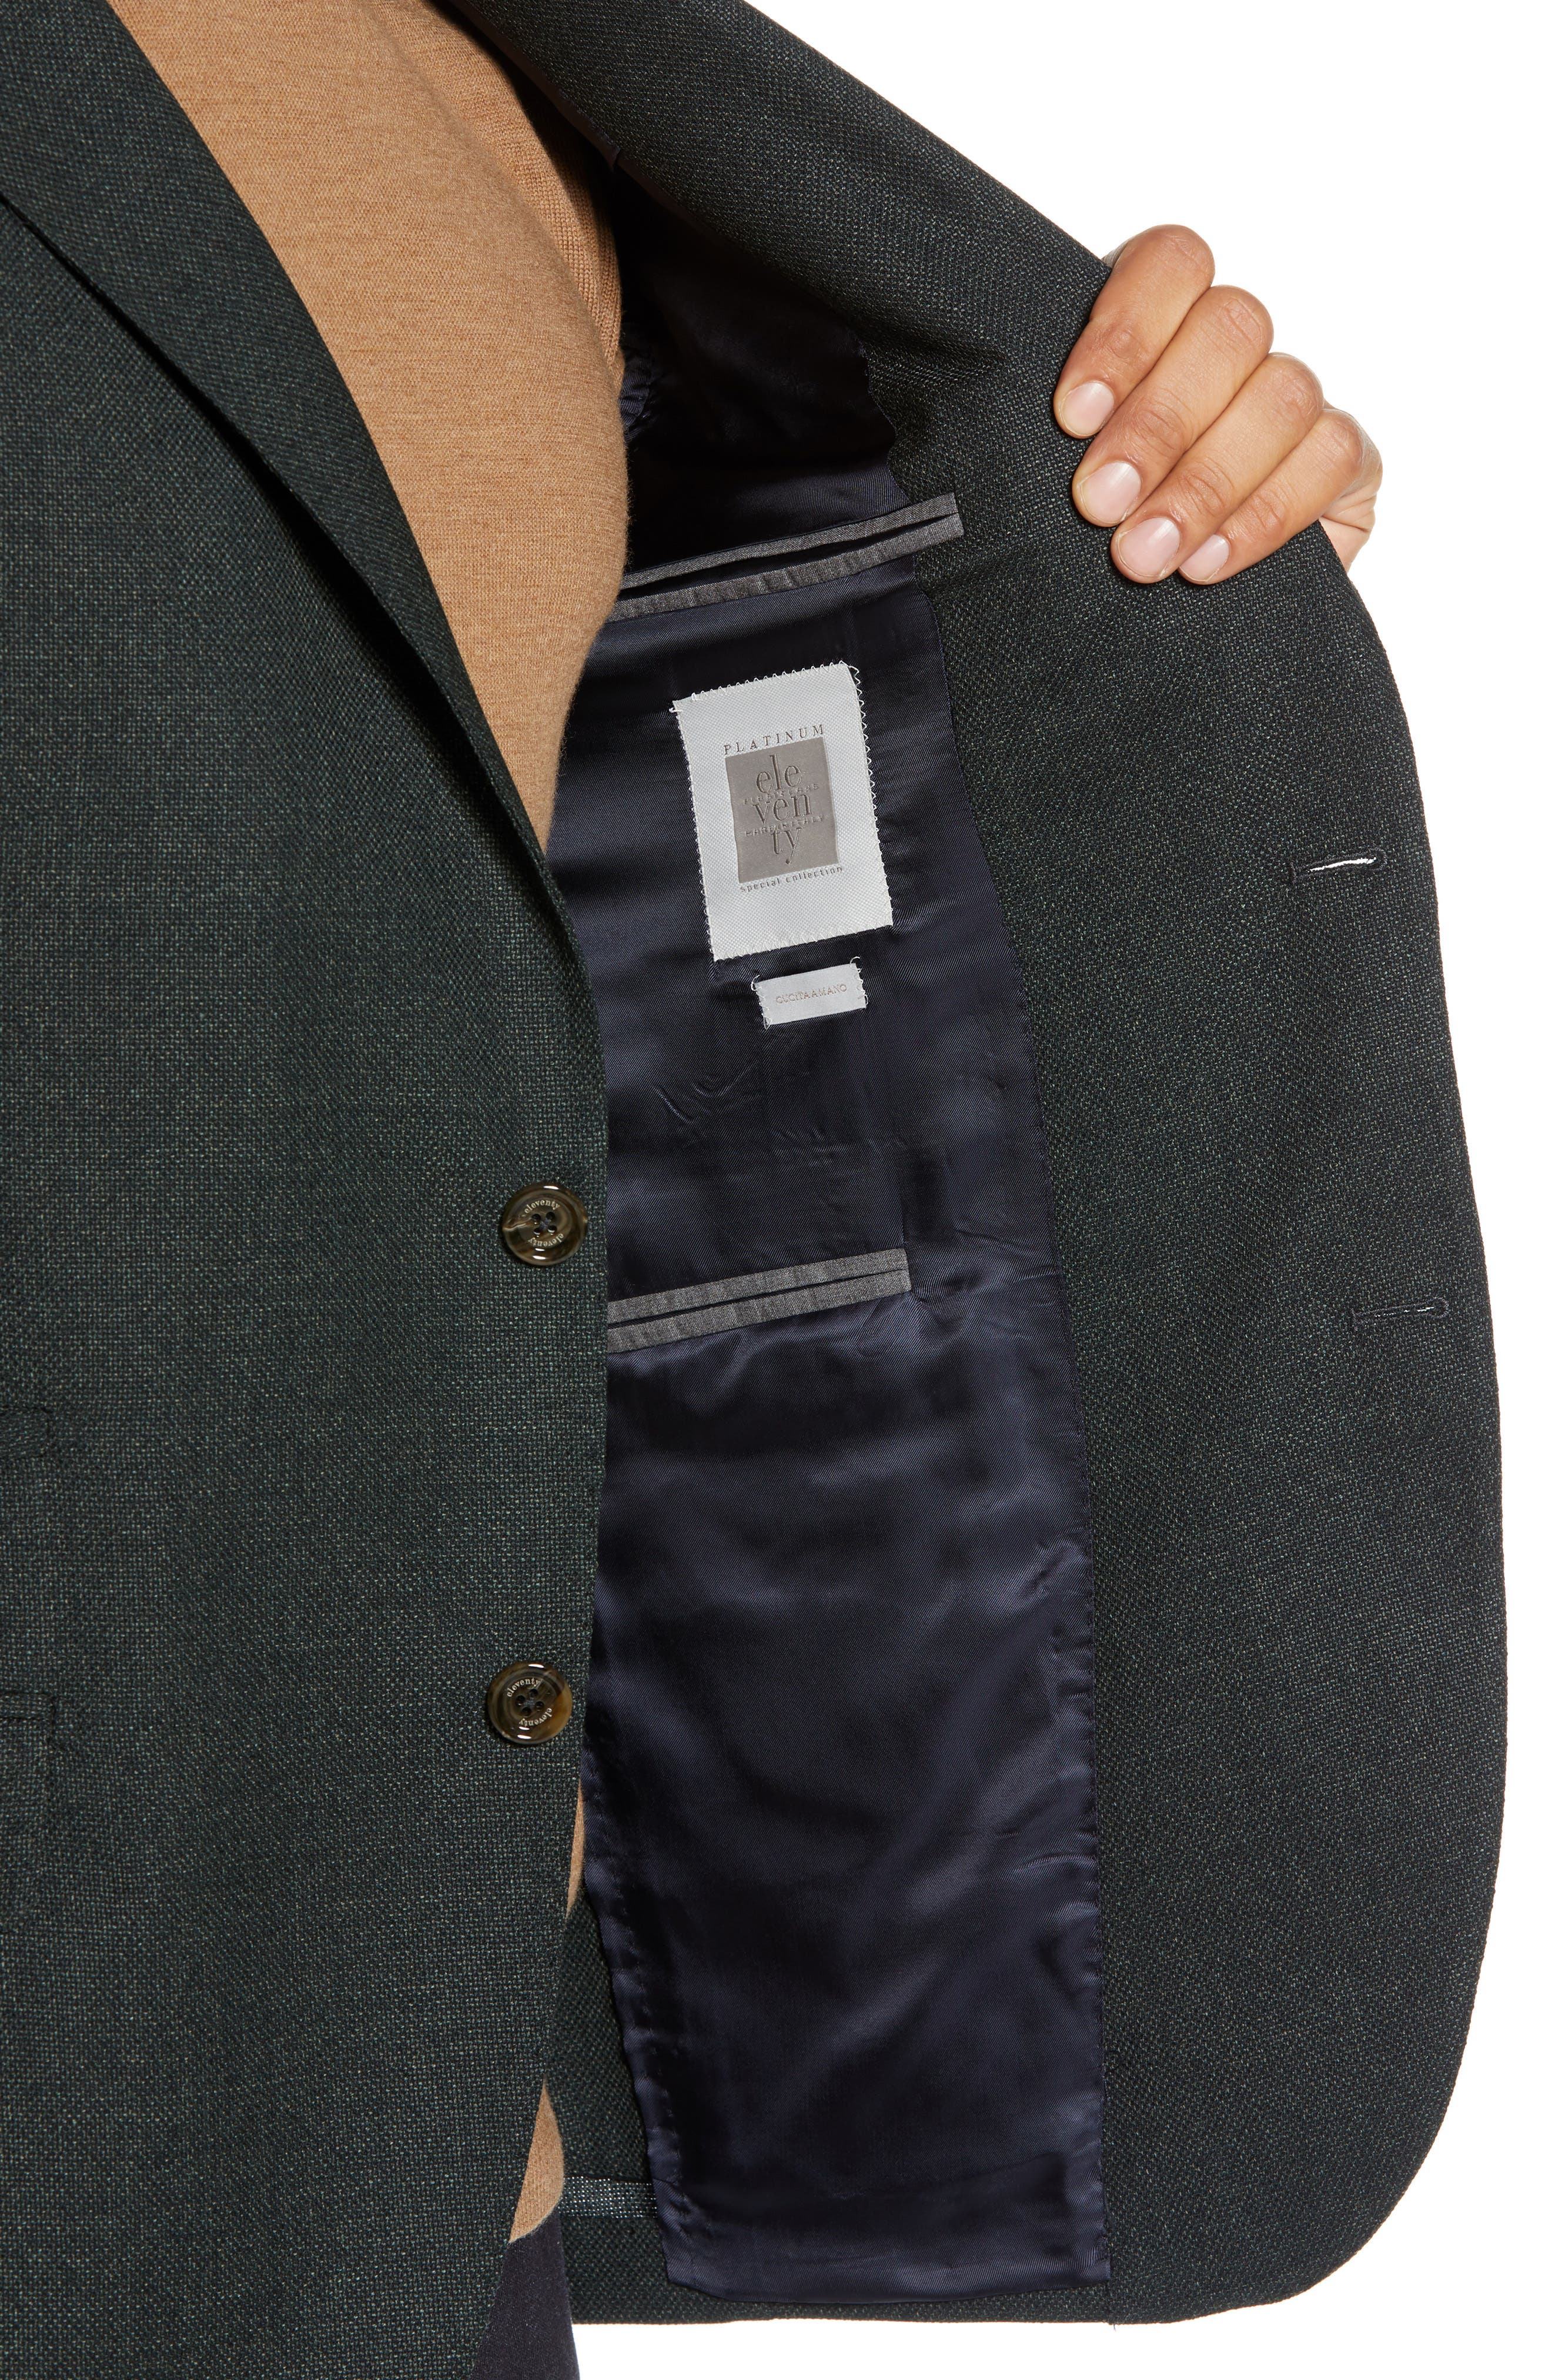 Trim Fit Wool Blazer,                             Alternate thumbnail 4, color,                             GREEN